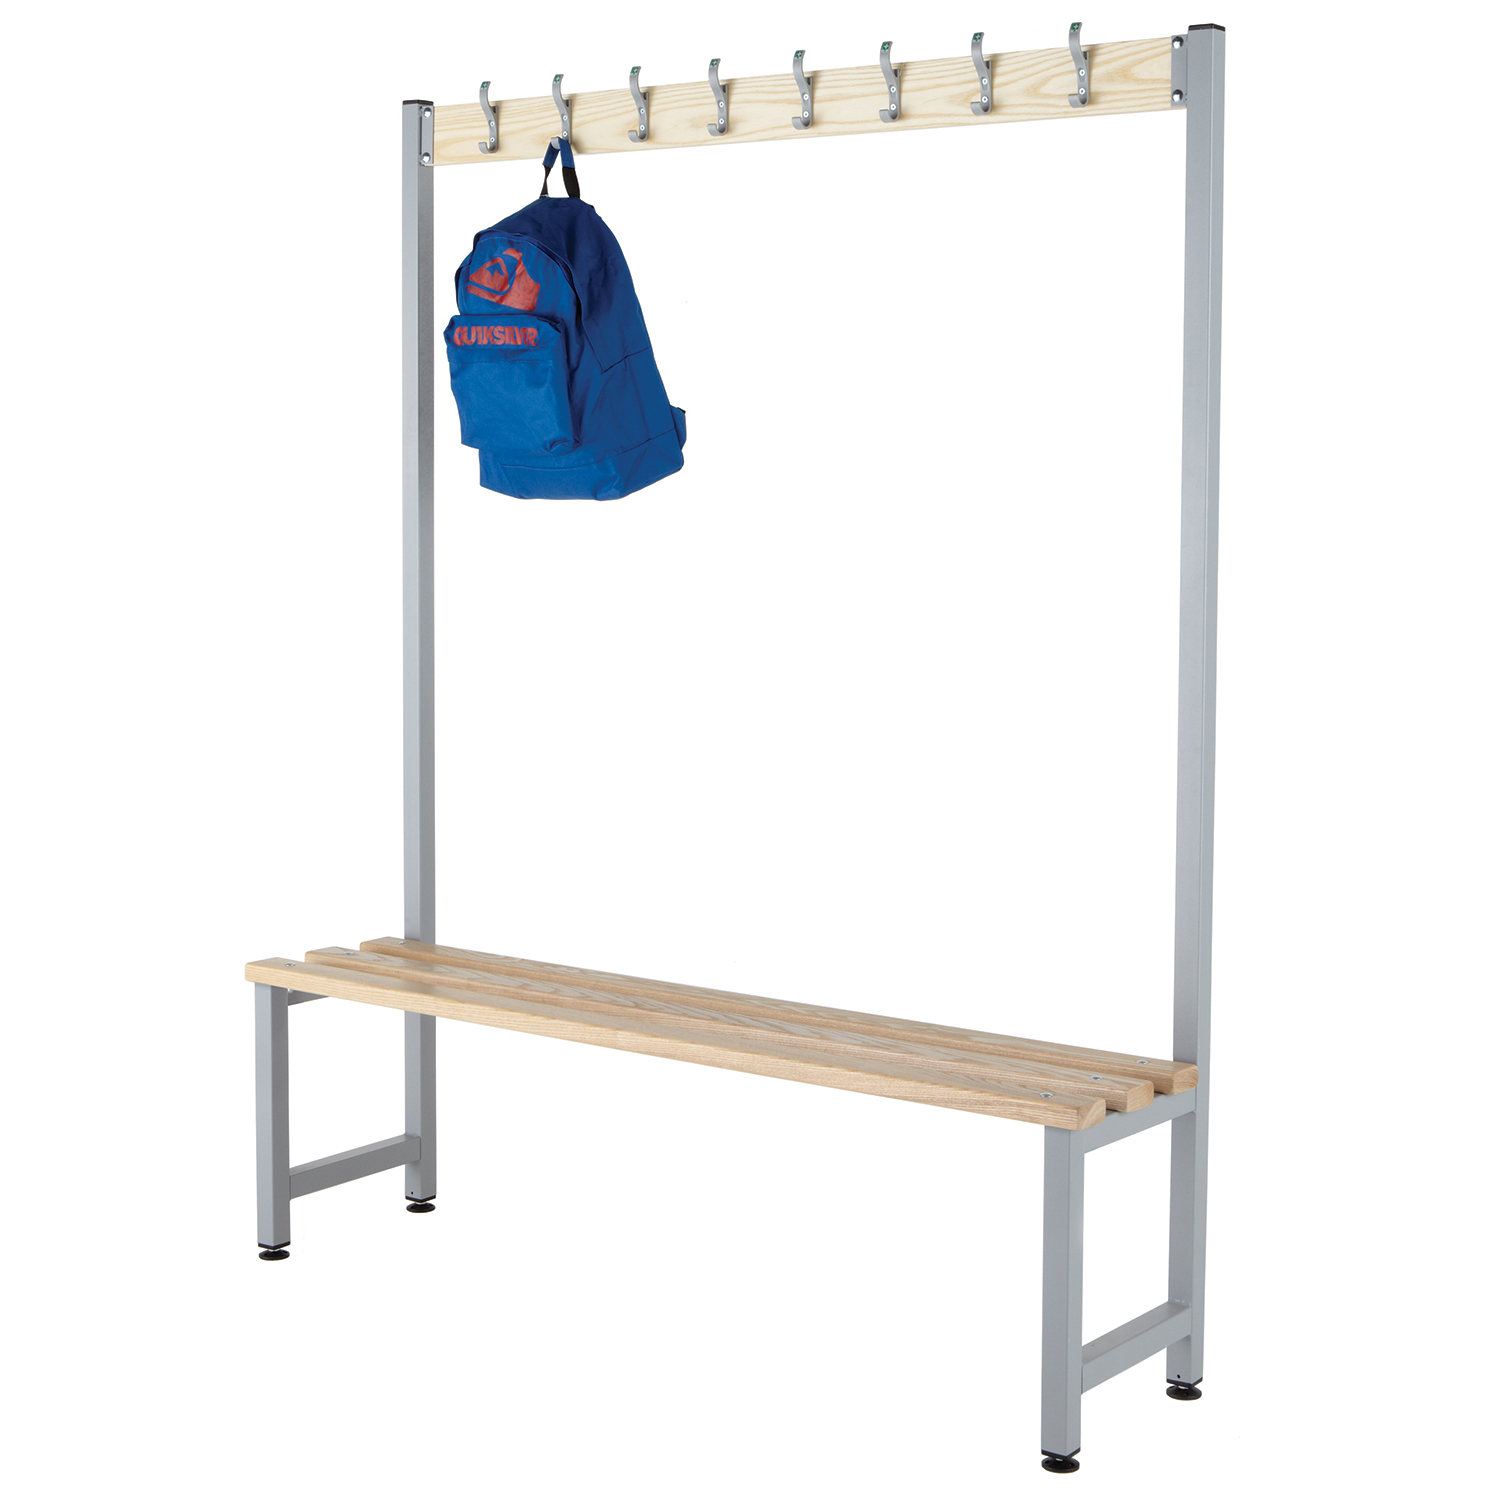 Probe cloakroom budget hook bench single sided